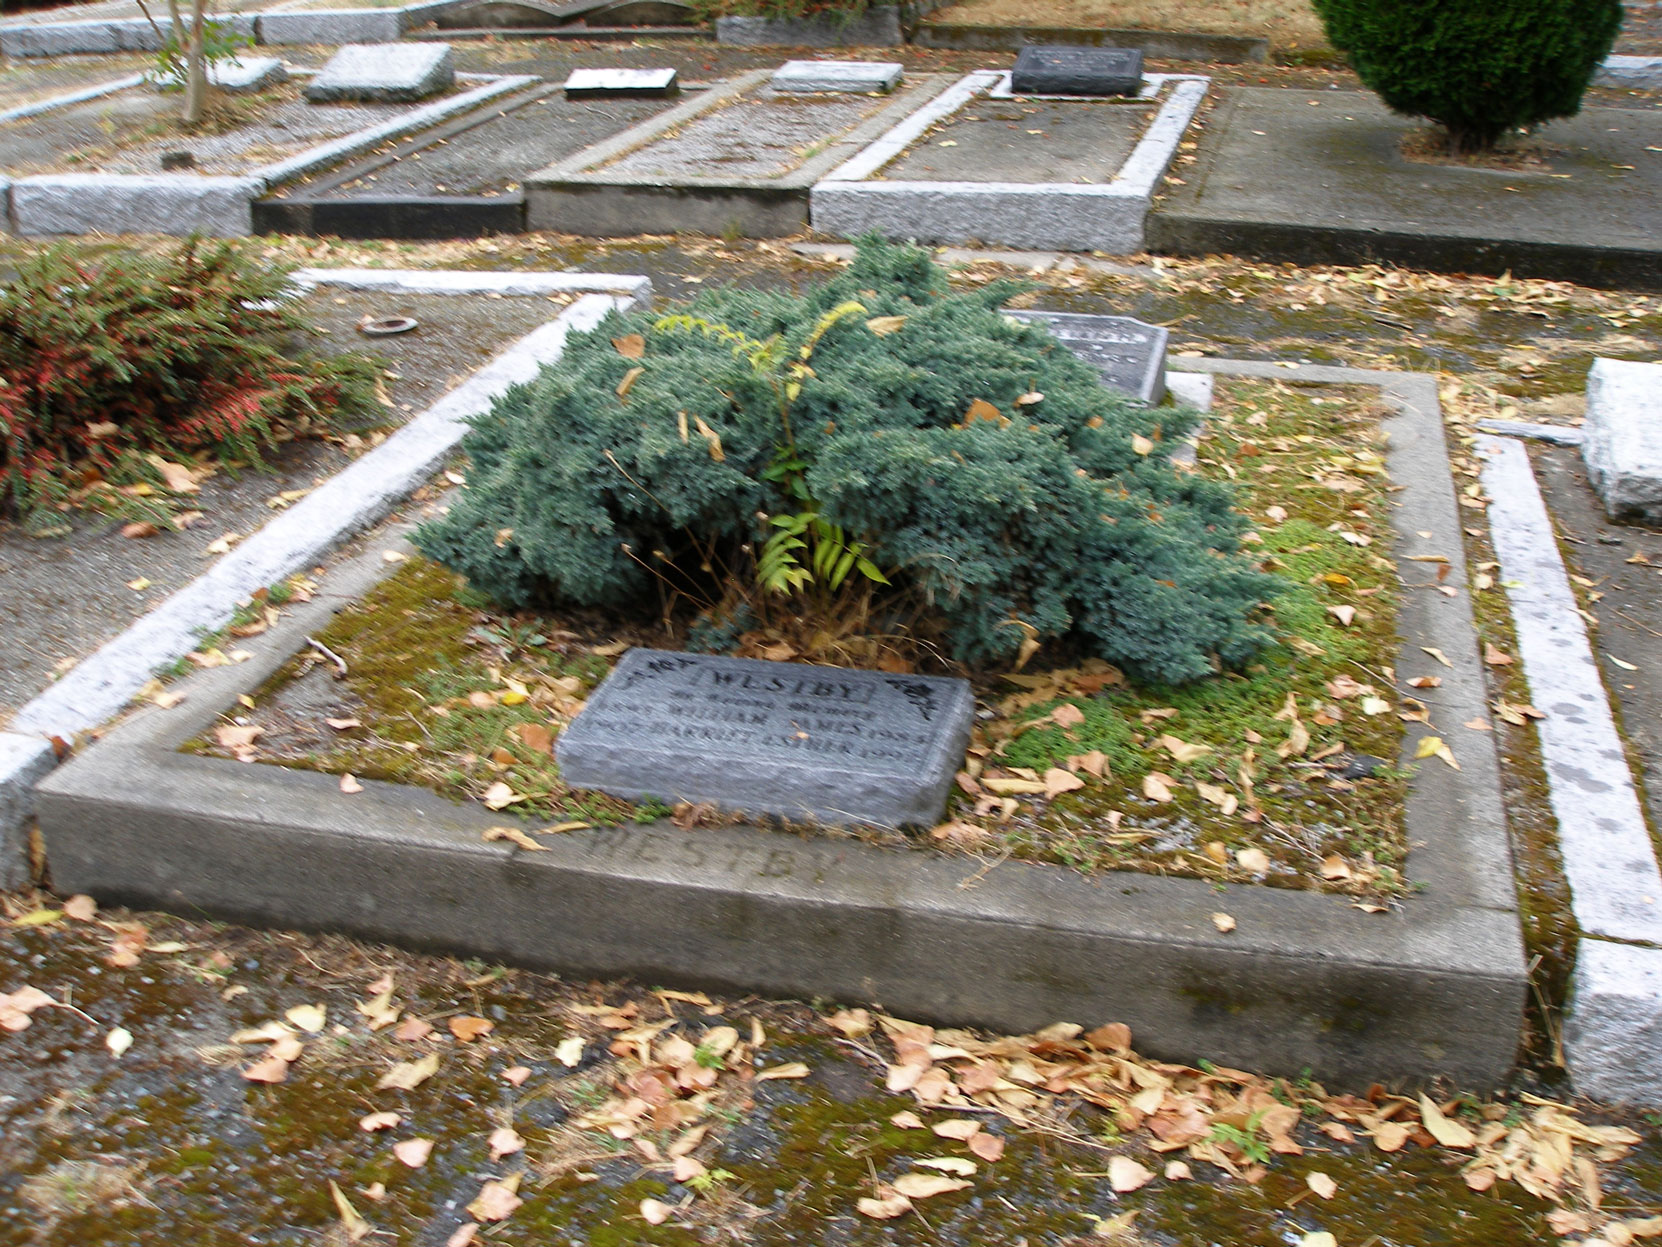 William Henry Westby grave, St. Luke's Anglican Cemetery, Saanich, B.C. (photo by author)